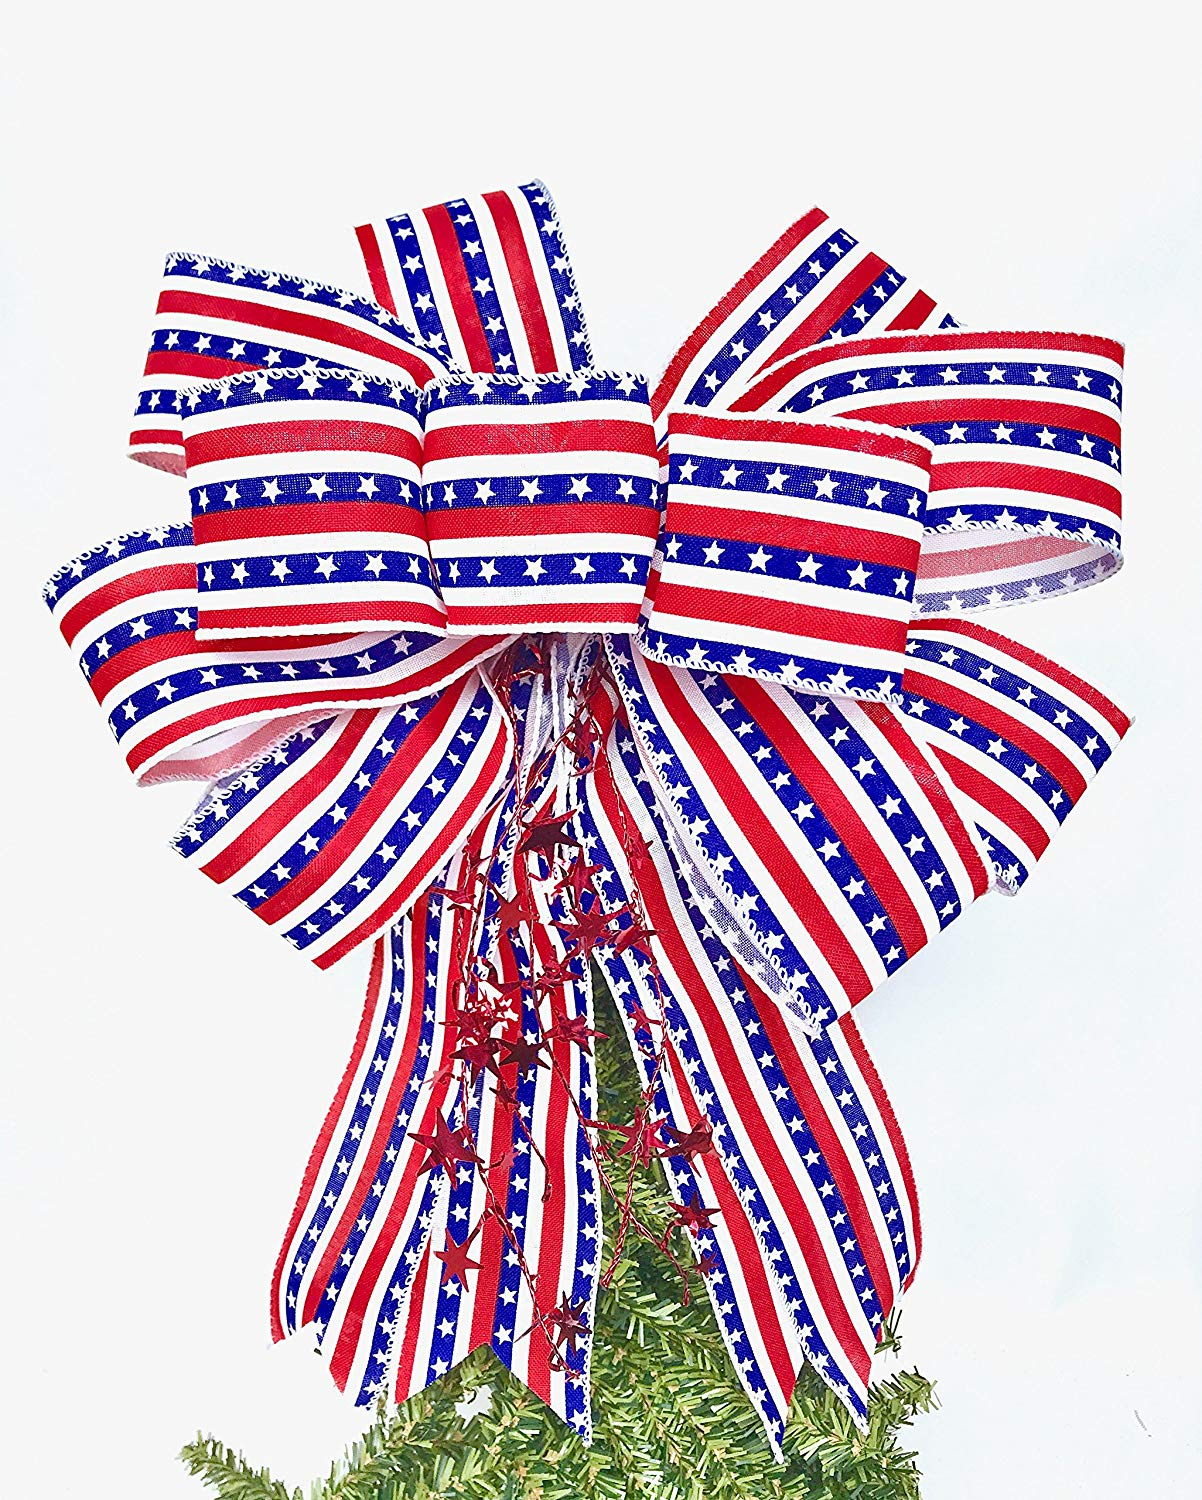 Wreath Bow, Red White Blue Handmade Large Gift Bow, Office Decorating, Fourth of July bow, Holiday Bow, Home Decor, Swag Bow, Door Decor - Handmade Bow